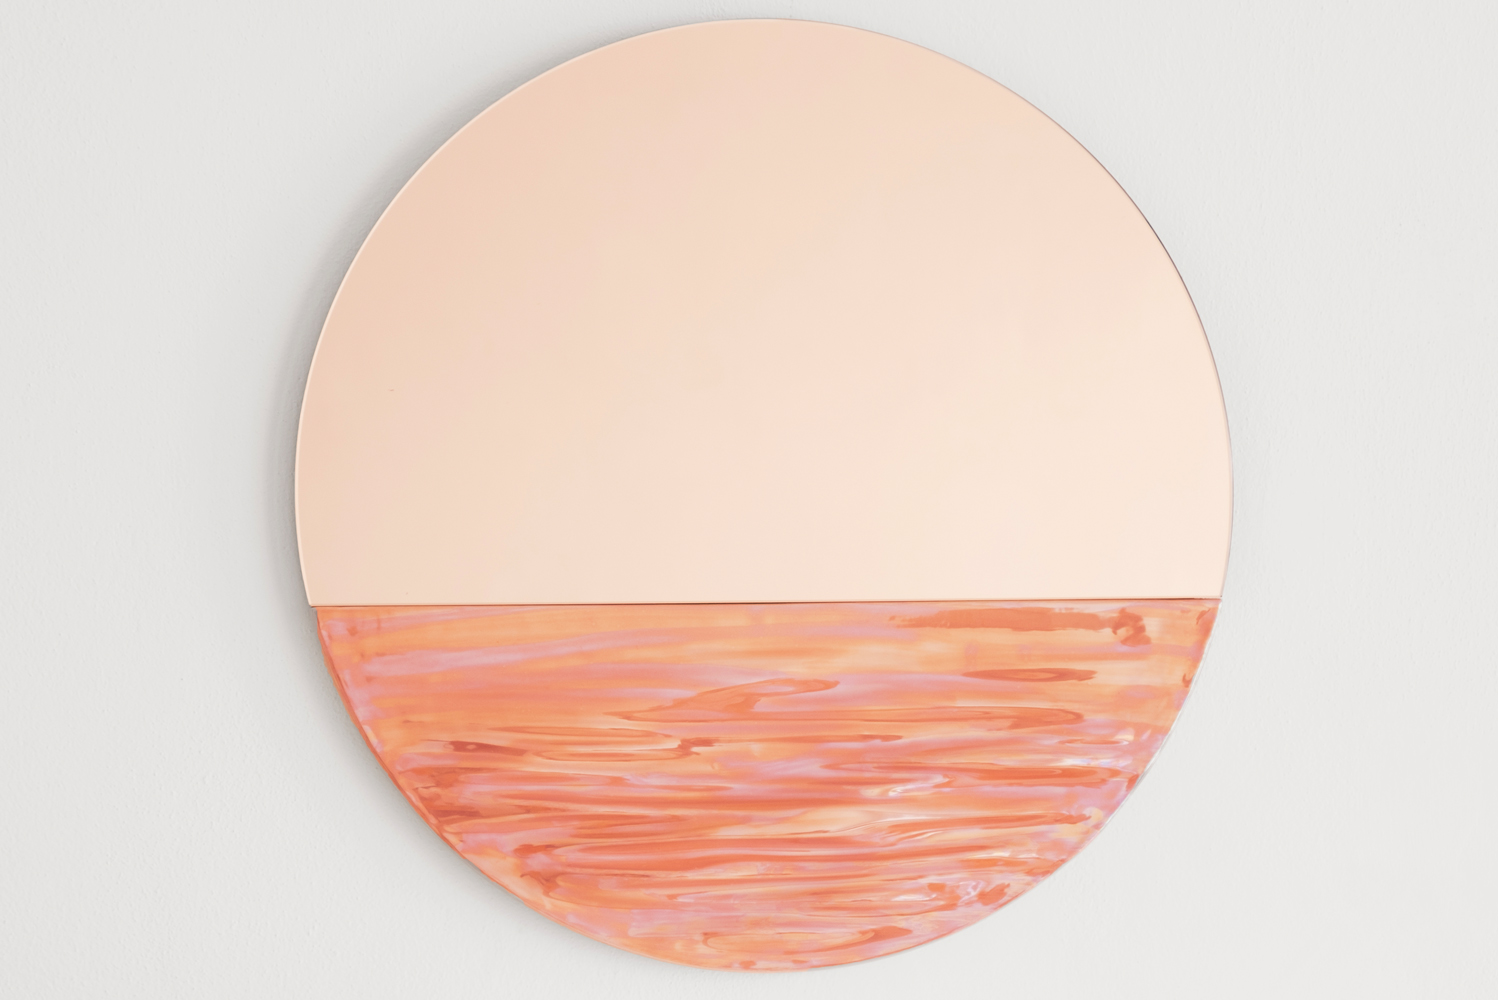 Ocrùm introduced three colors - iridescent, emerald green and coral pink - to its line of Orizon mirrors.